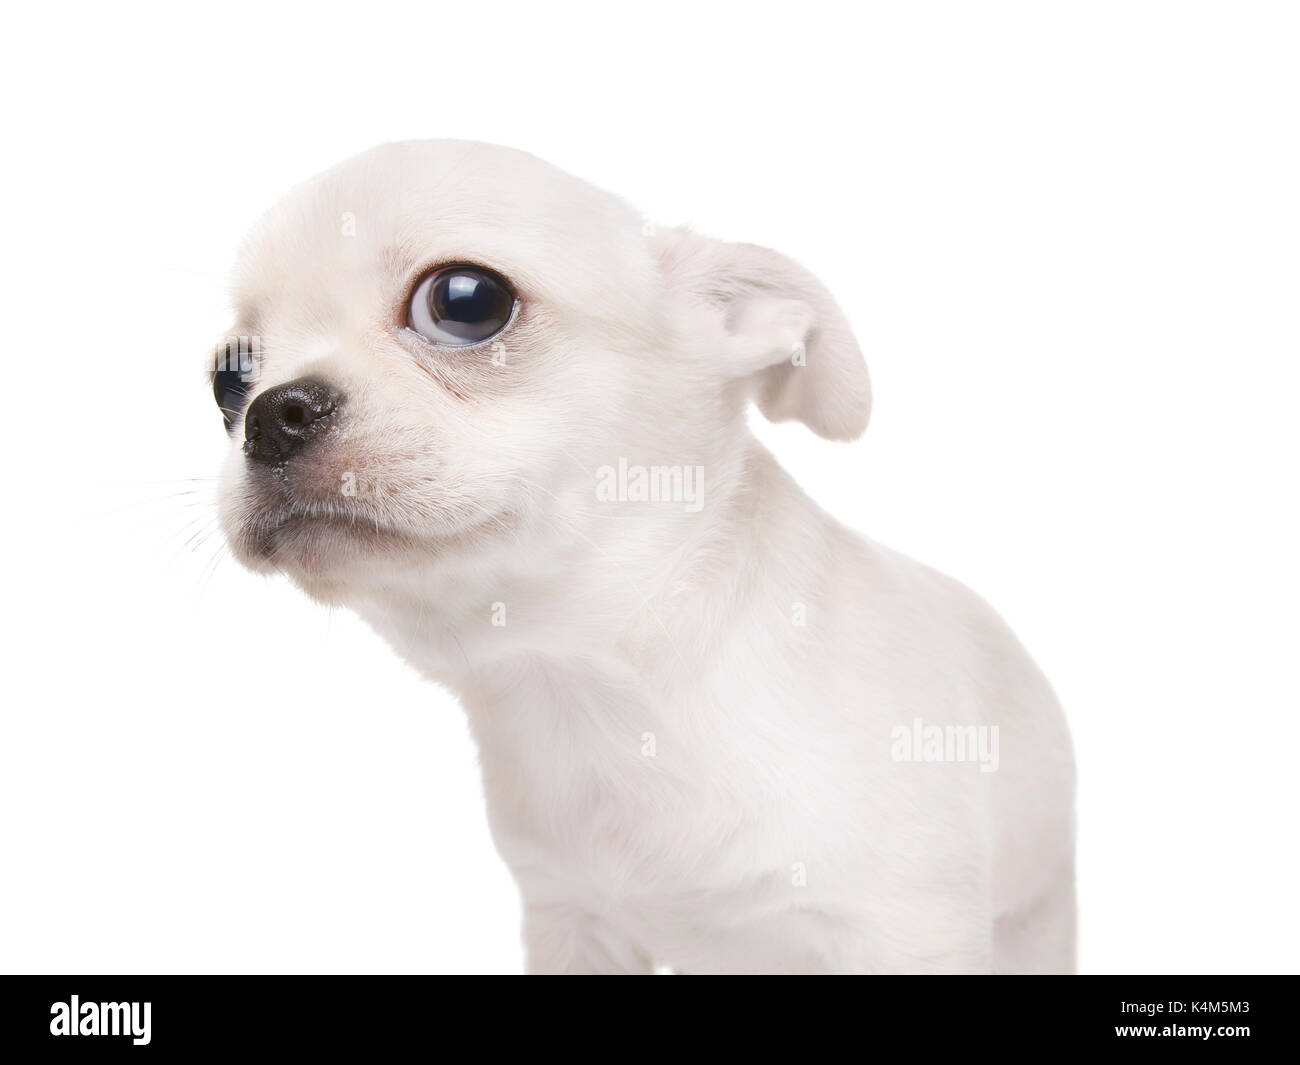 Small puppy dog looking at something. Purebred cobby type chihuahua. Isolated on white - Stock Image